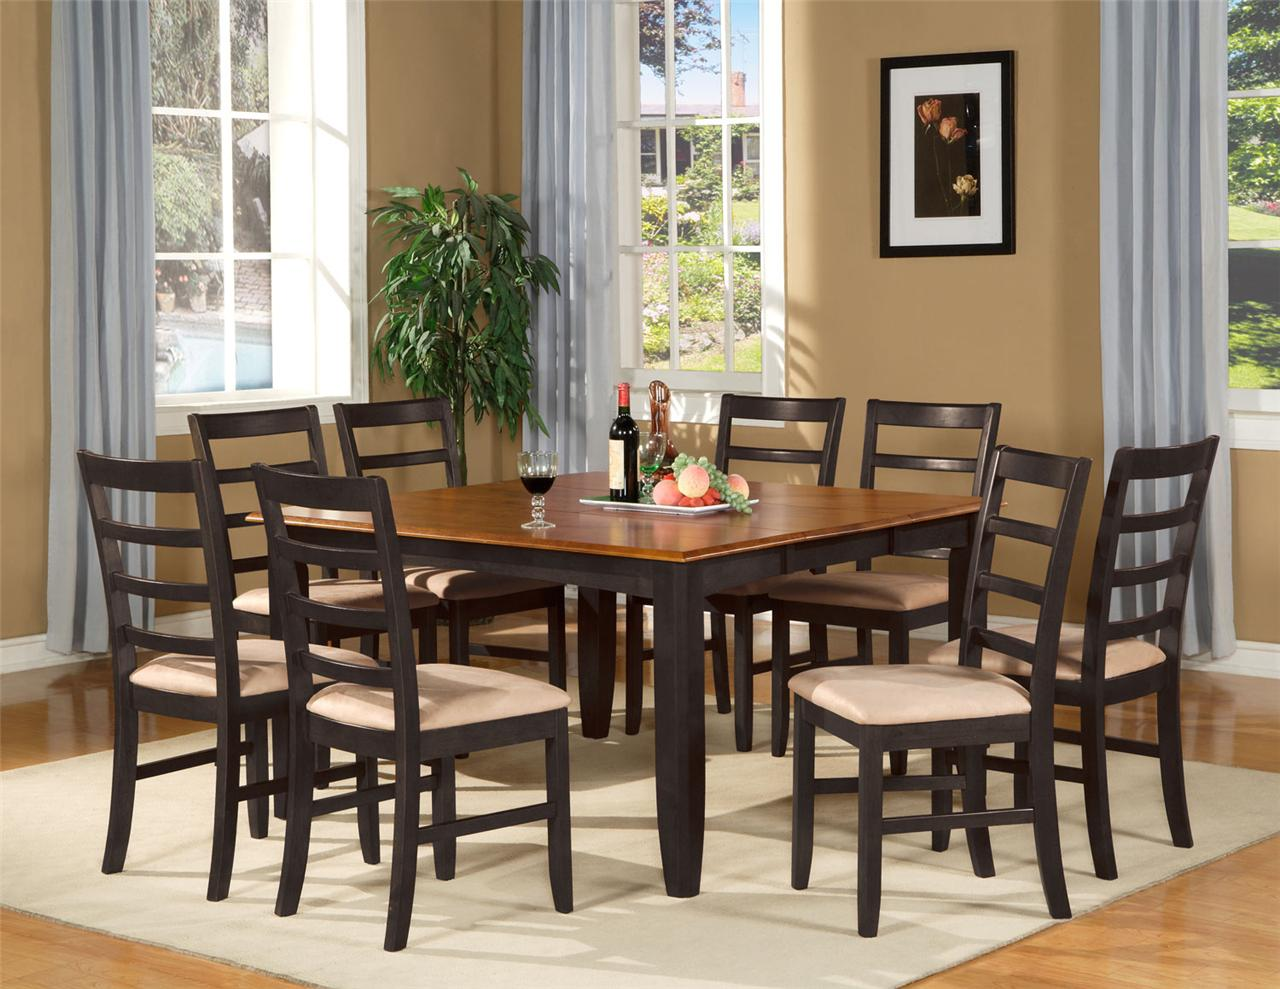 9 PC SQUARE DINETTE DINING ROOM TABLE SET AND 8 CHAIRS eBay : 520733821o from www.ebay.com size 1280 x 989 jpeg 159kB